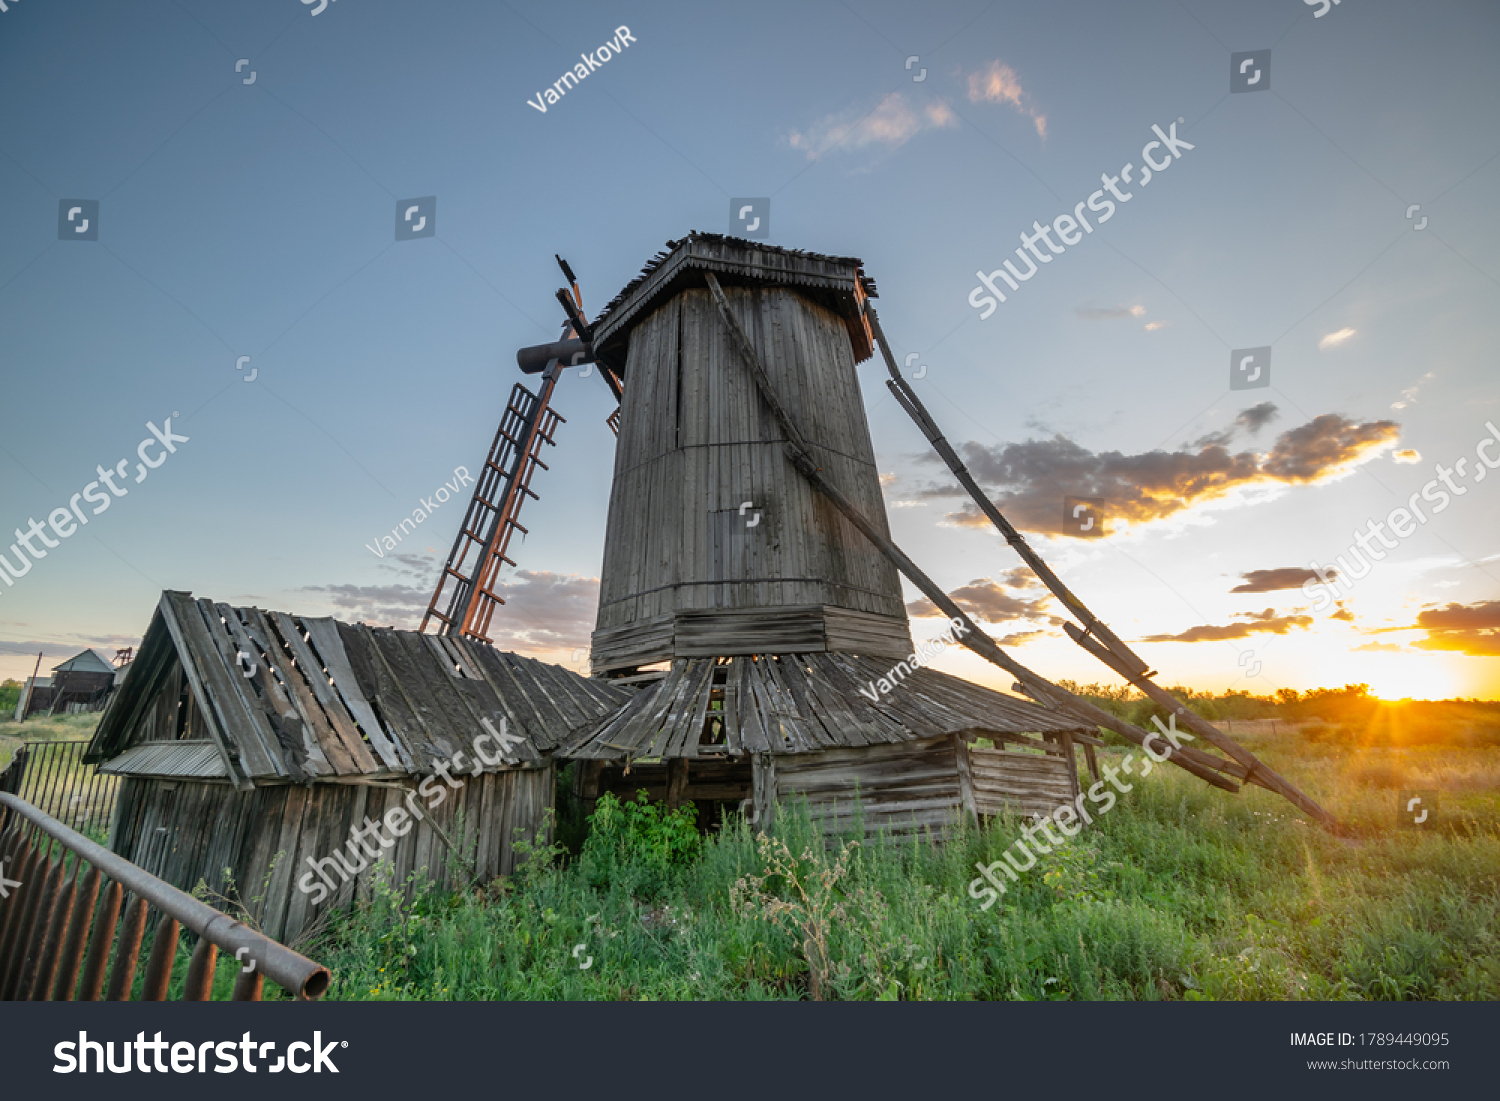 stock-photo-old-abandoned-wooden-wind-mi